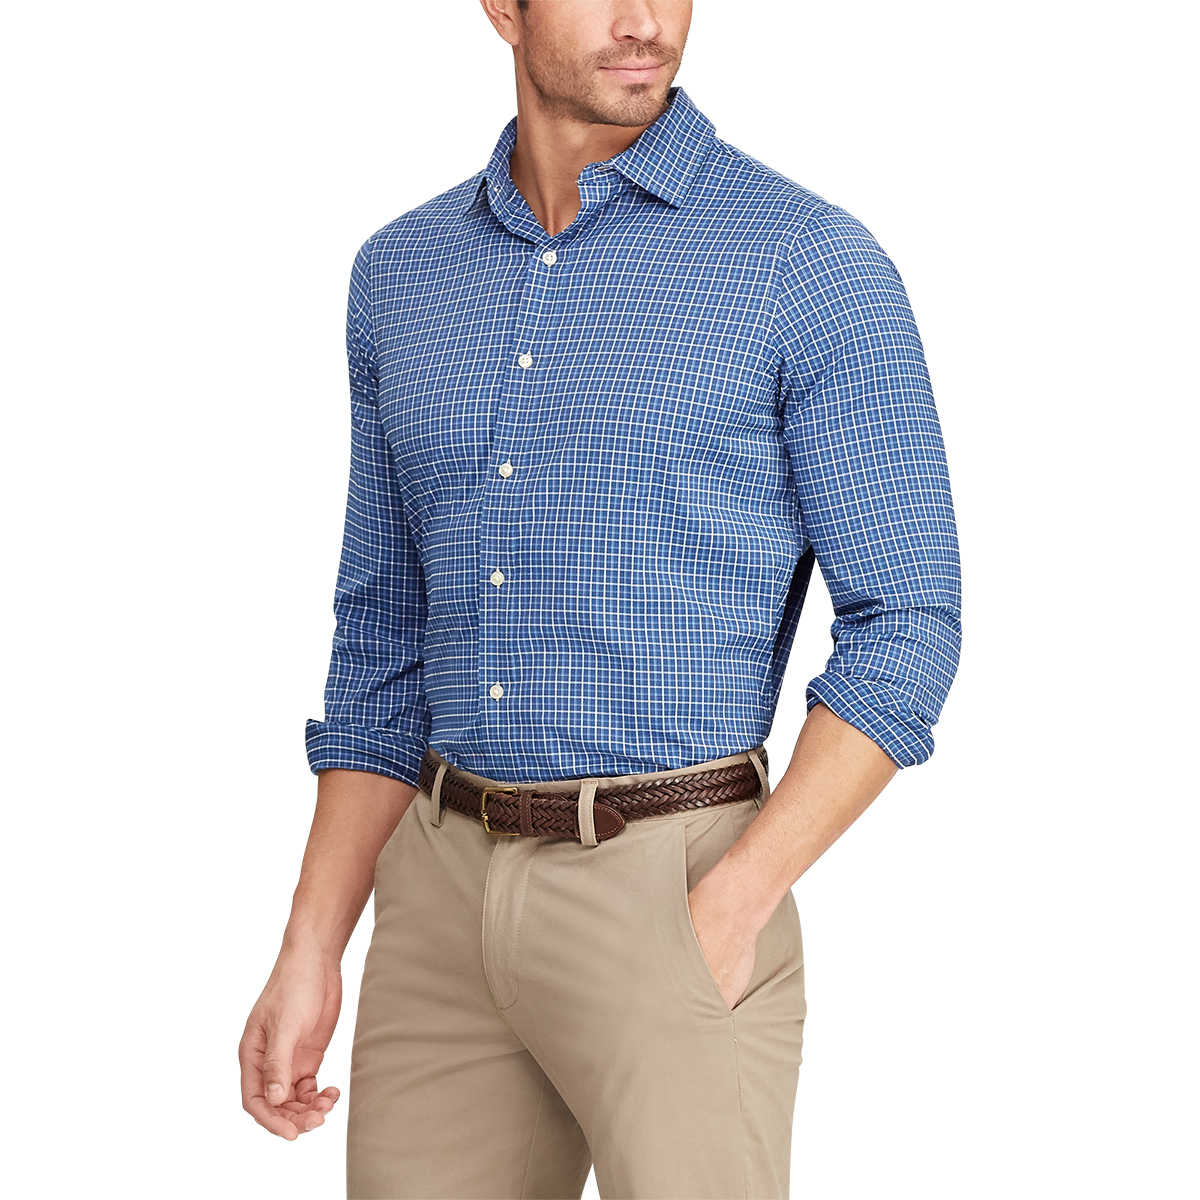 Chaps Men's Long-Sleeve Performance Tattersall Stretch Twill Button Down Shirt - Various Patterns, M